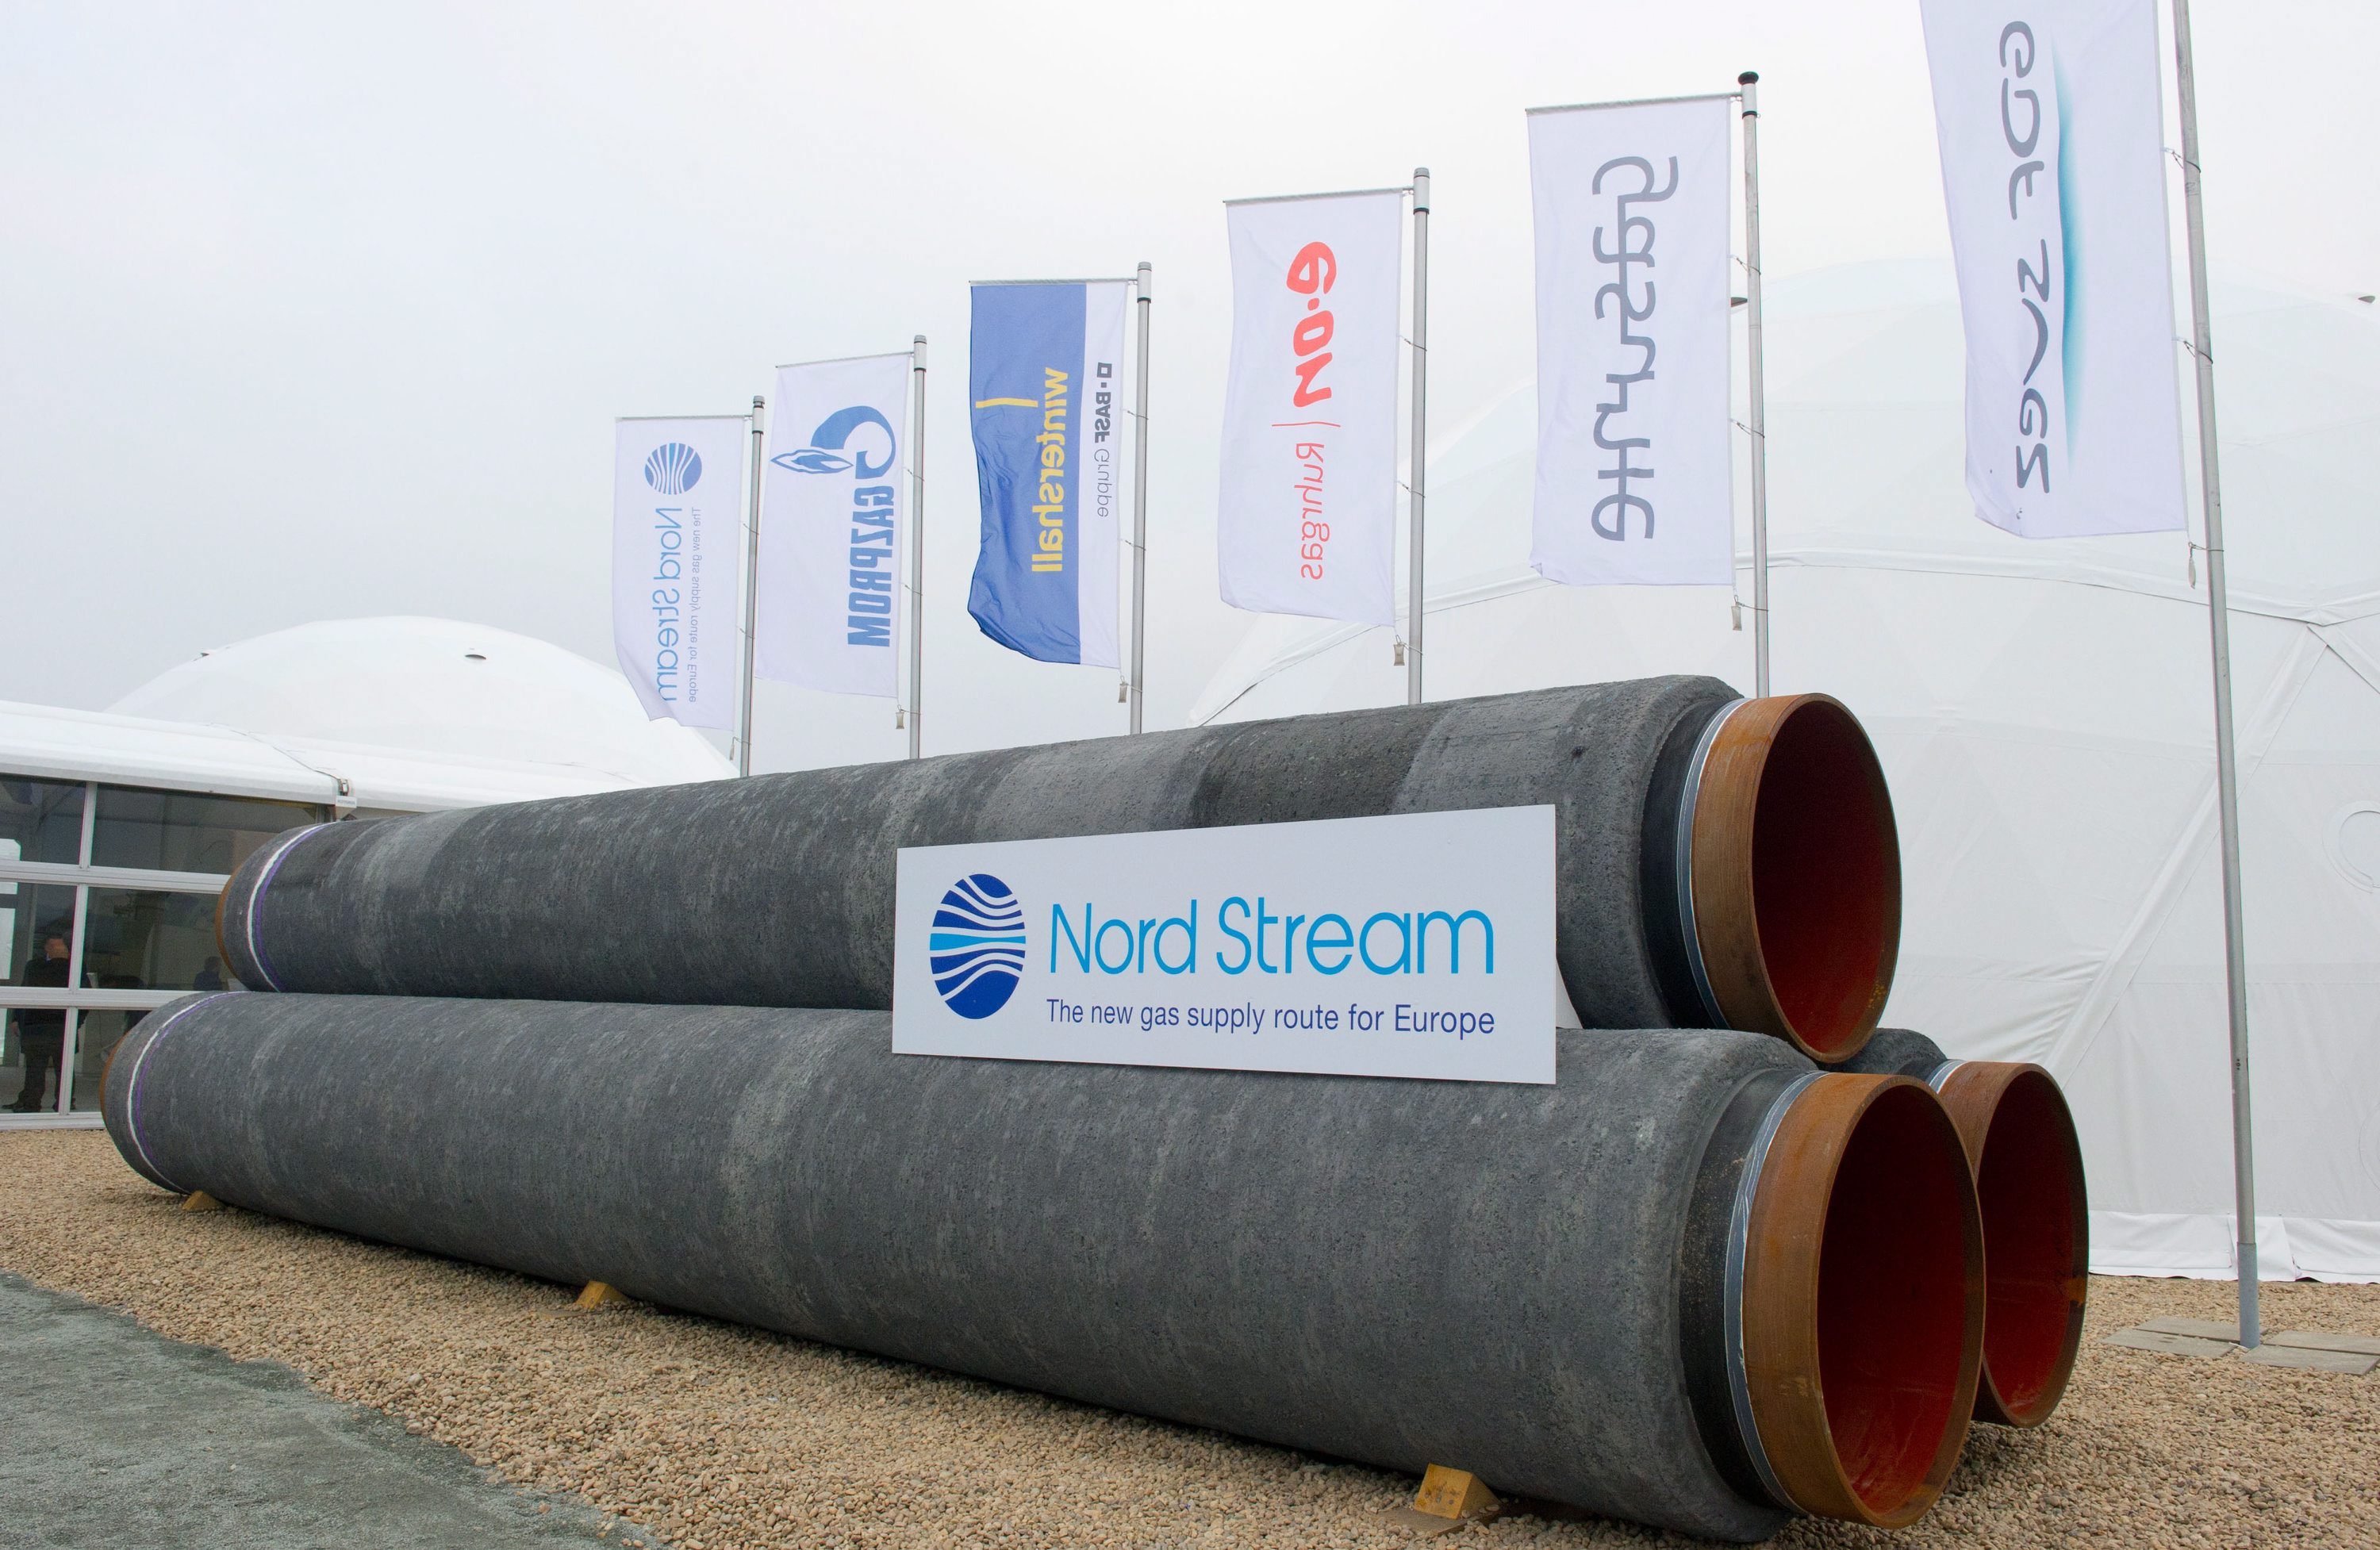 ukraine-pressure-nord-stream-line-two-speeds IMG